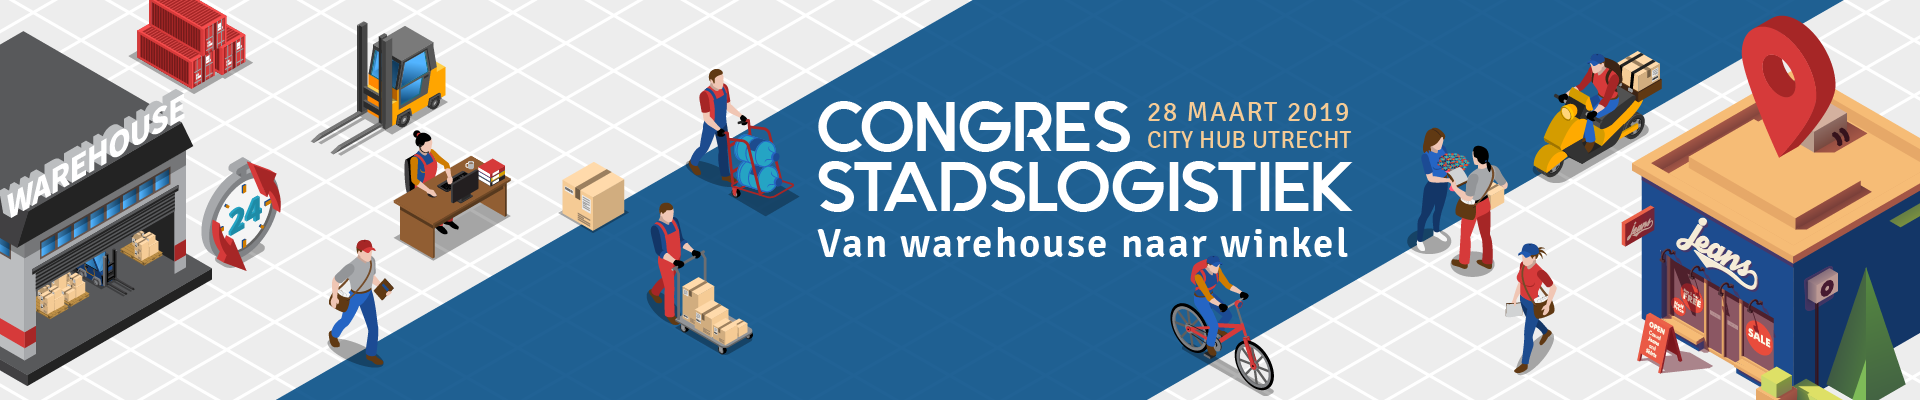 Stadslogistiek 2019